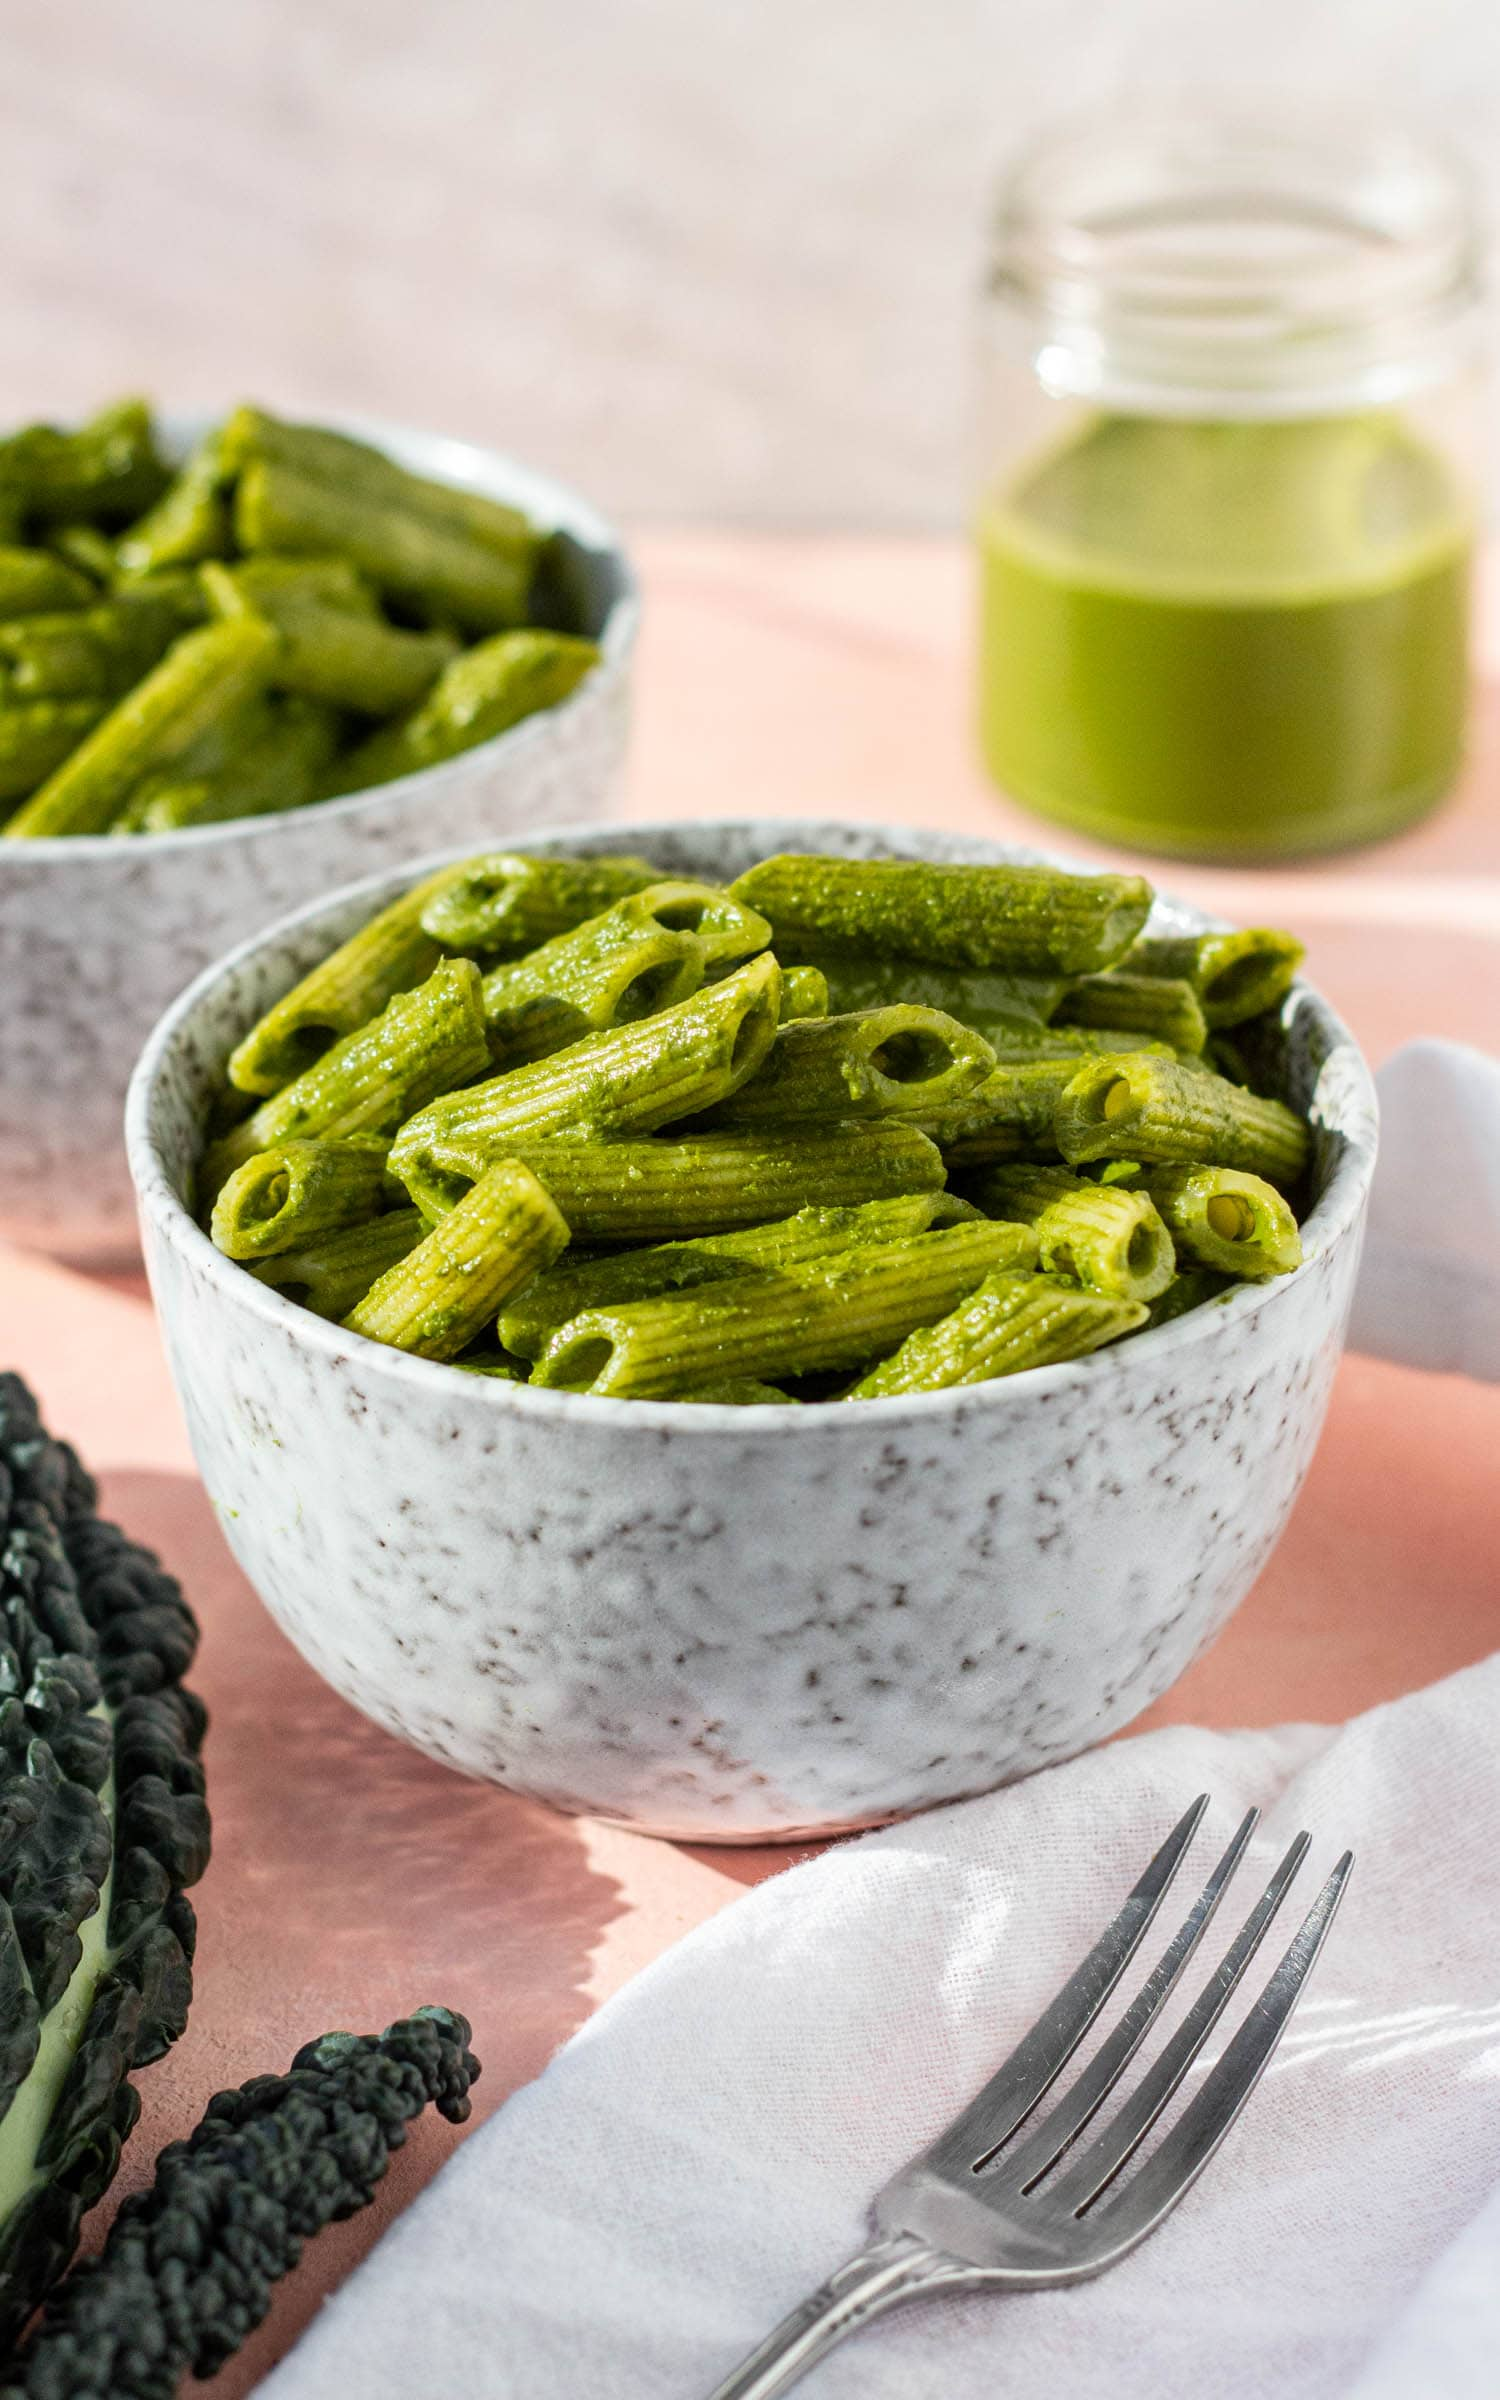 scene with bowls of kale pasta